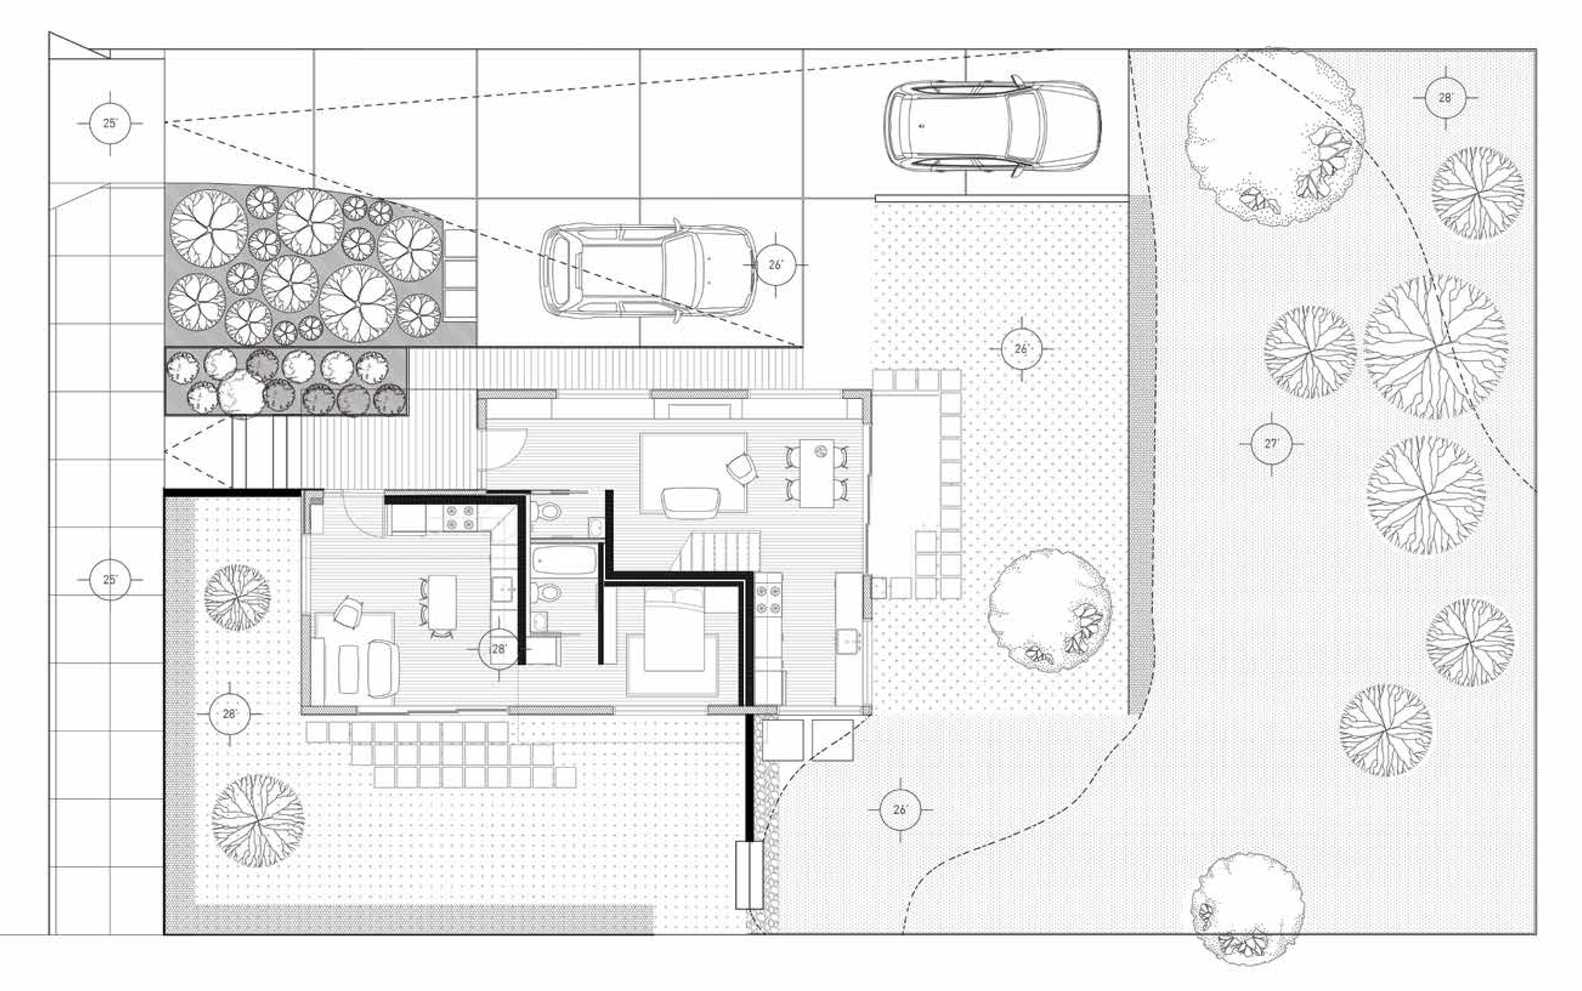 2018 jim vlock first year building project yale school of architecture floor plan